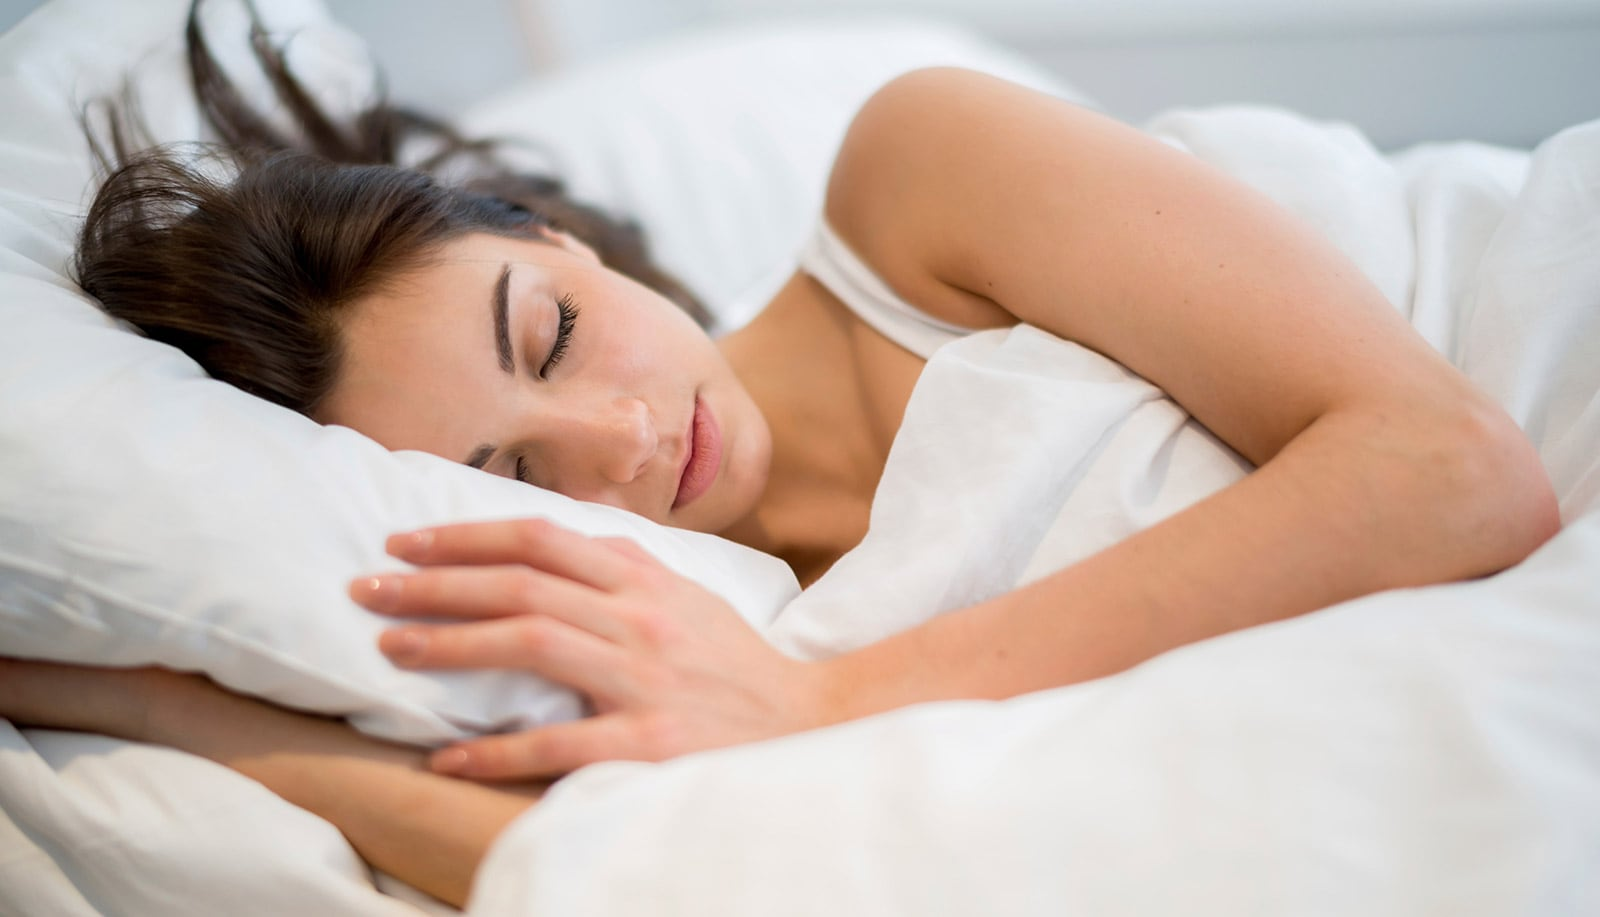 7 tips to improve your sleep habits